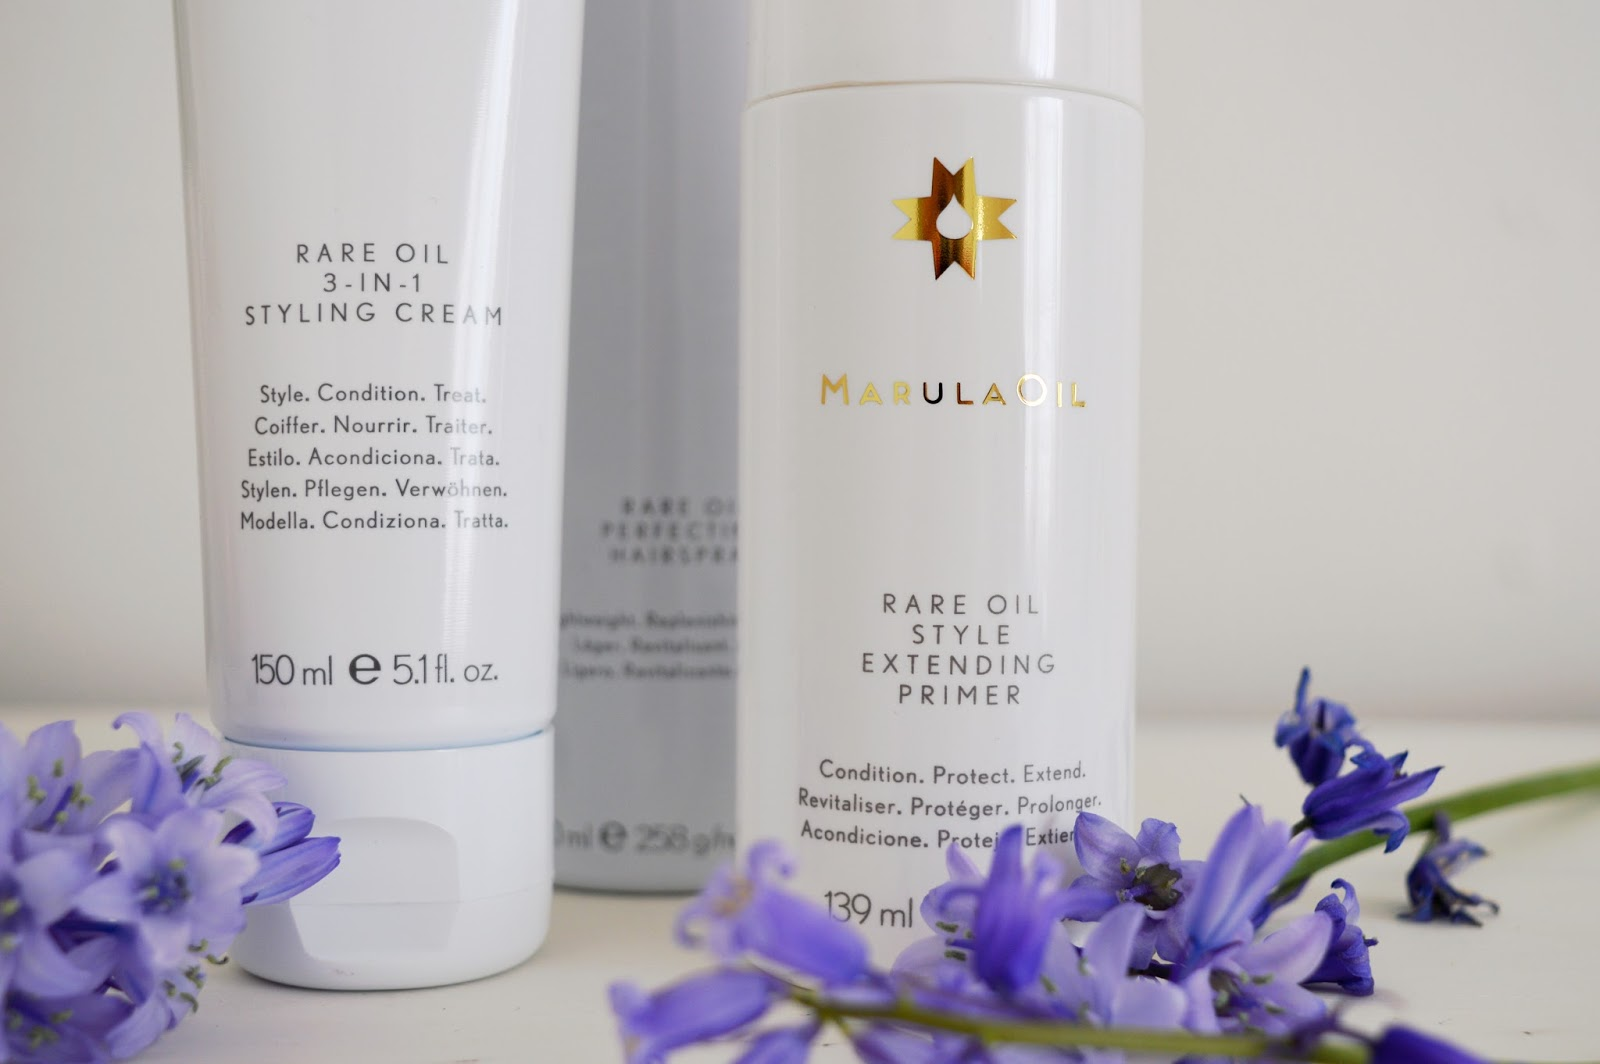 MarulaOil 3in1 Styling Cream